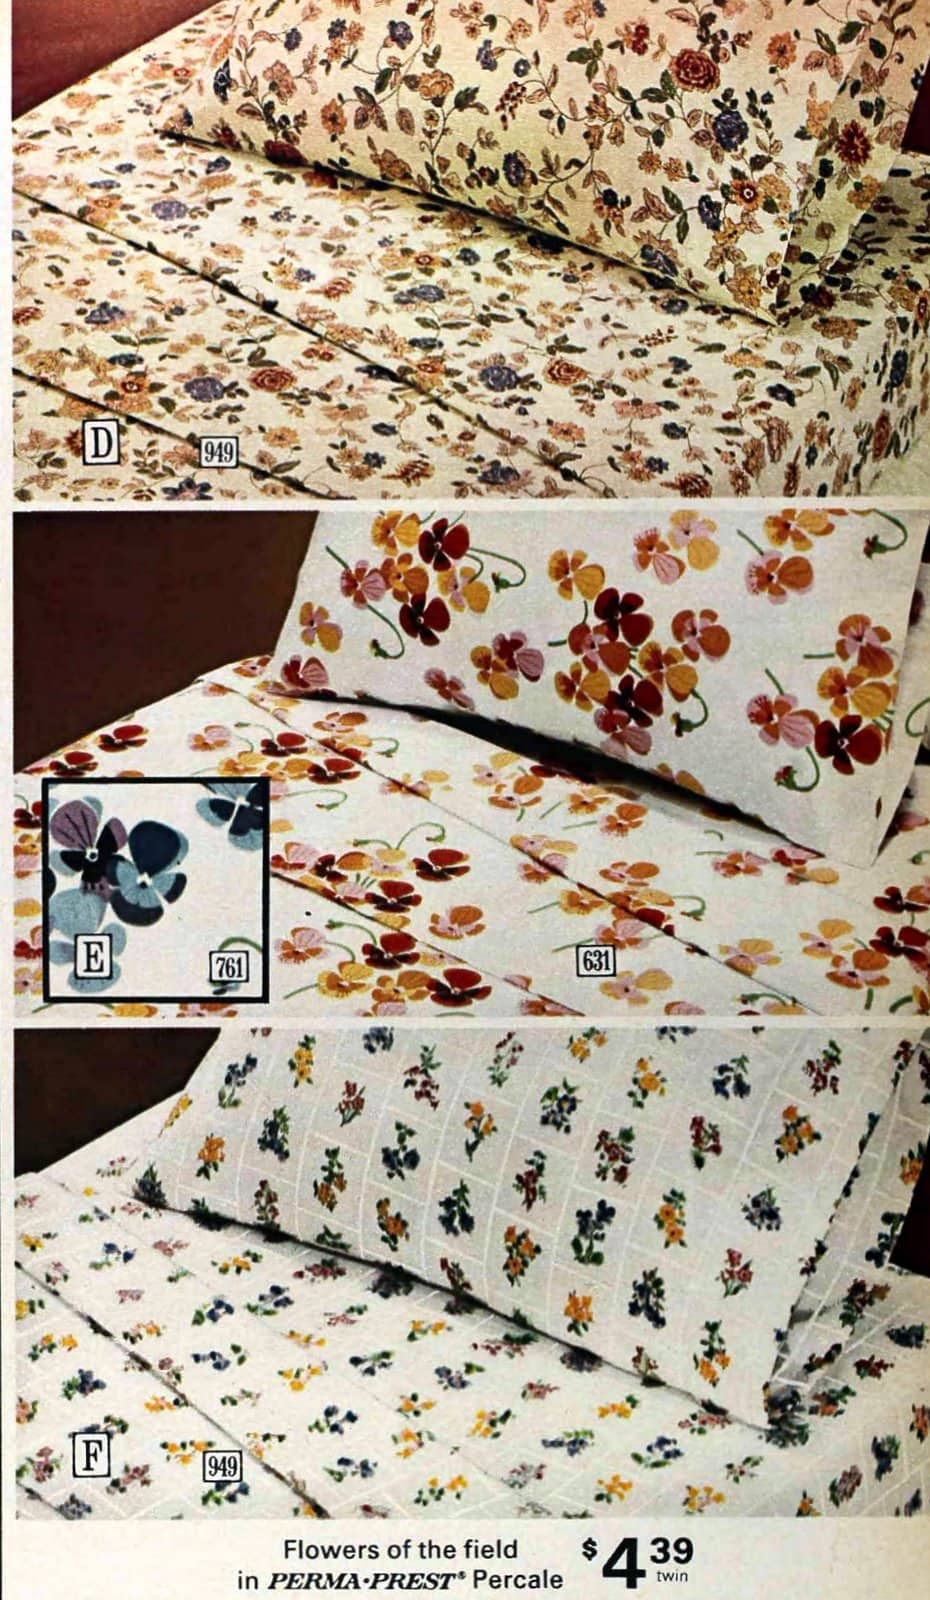 Old 1970s bedding and sheets with floral country patterns